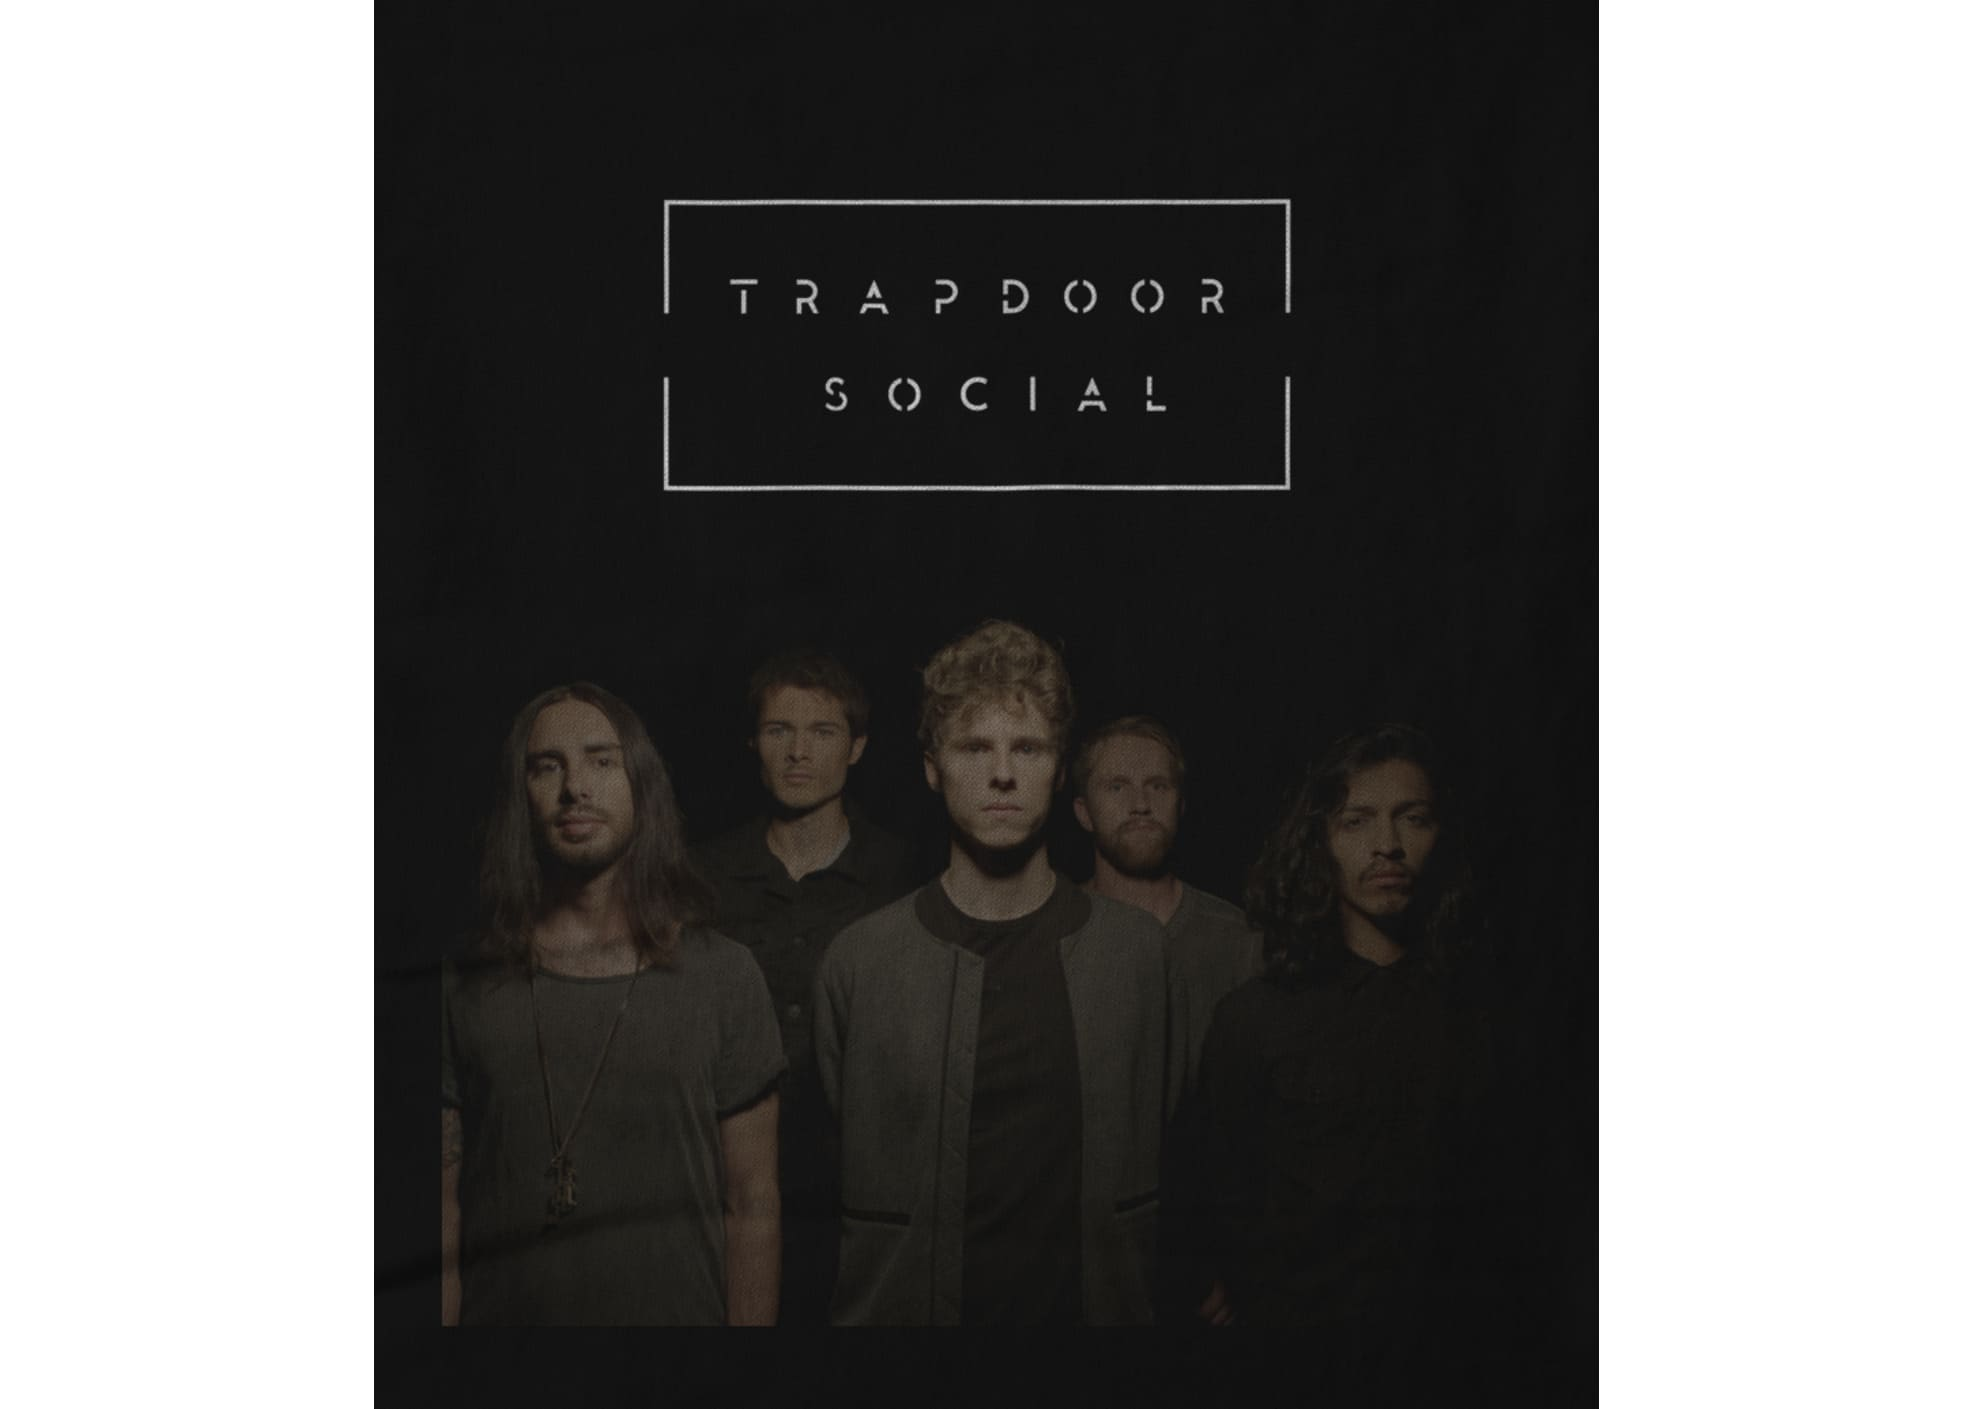 Trapdoor social winning as truth band pic 1508373967